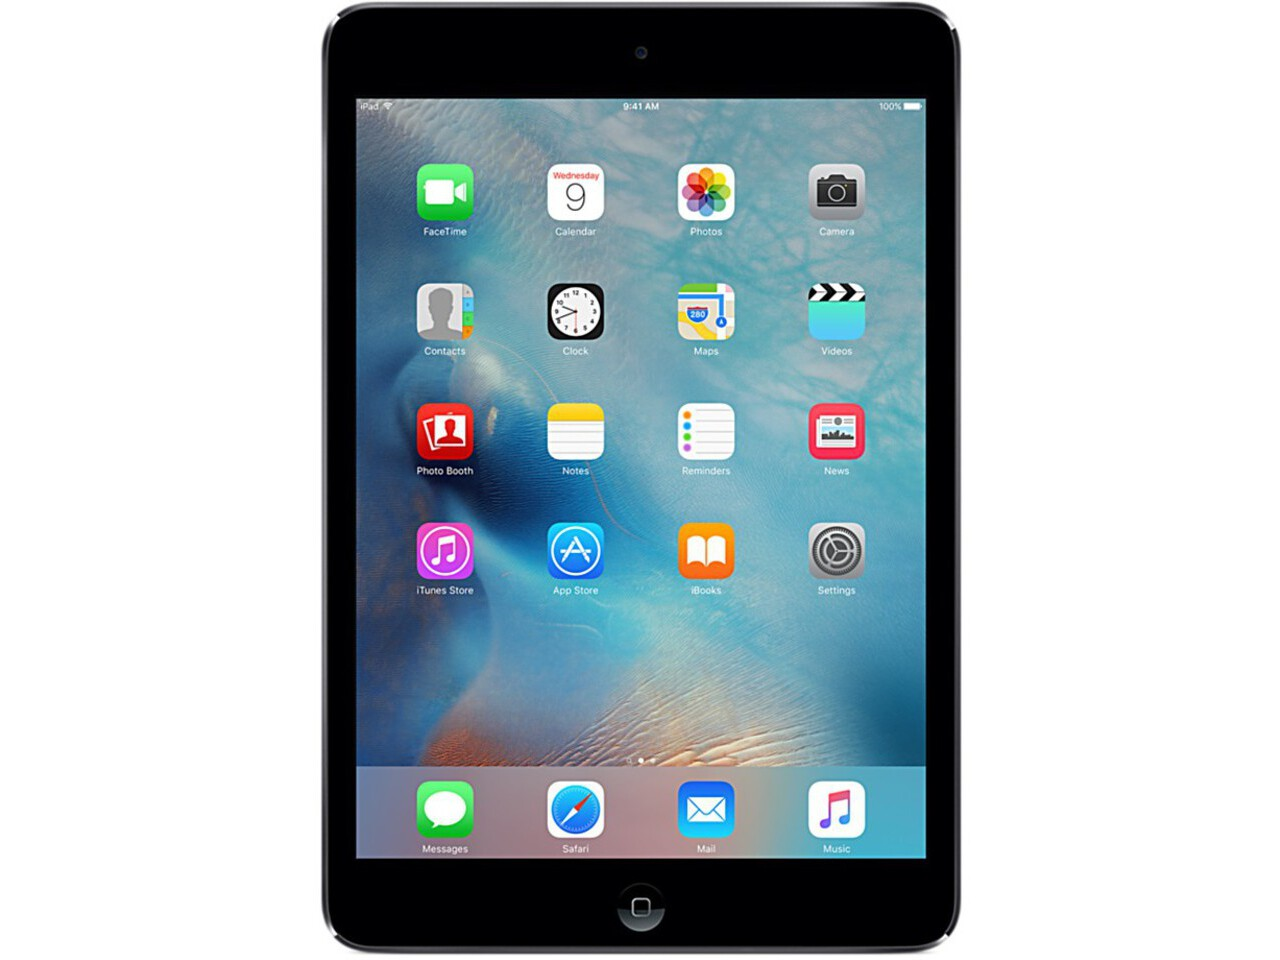 ipad mini 2 space gray